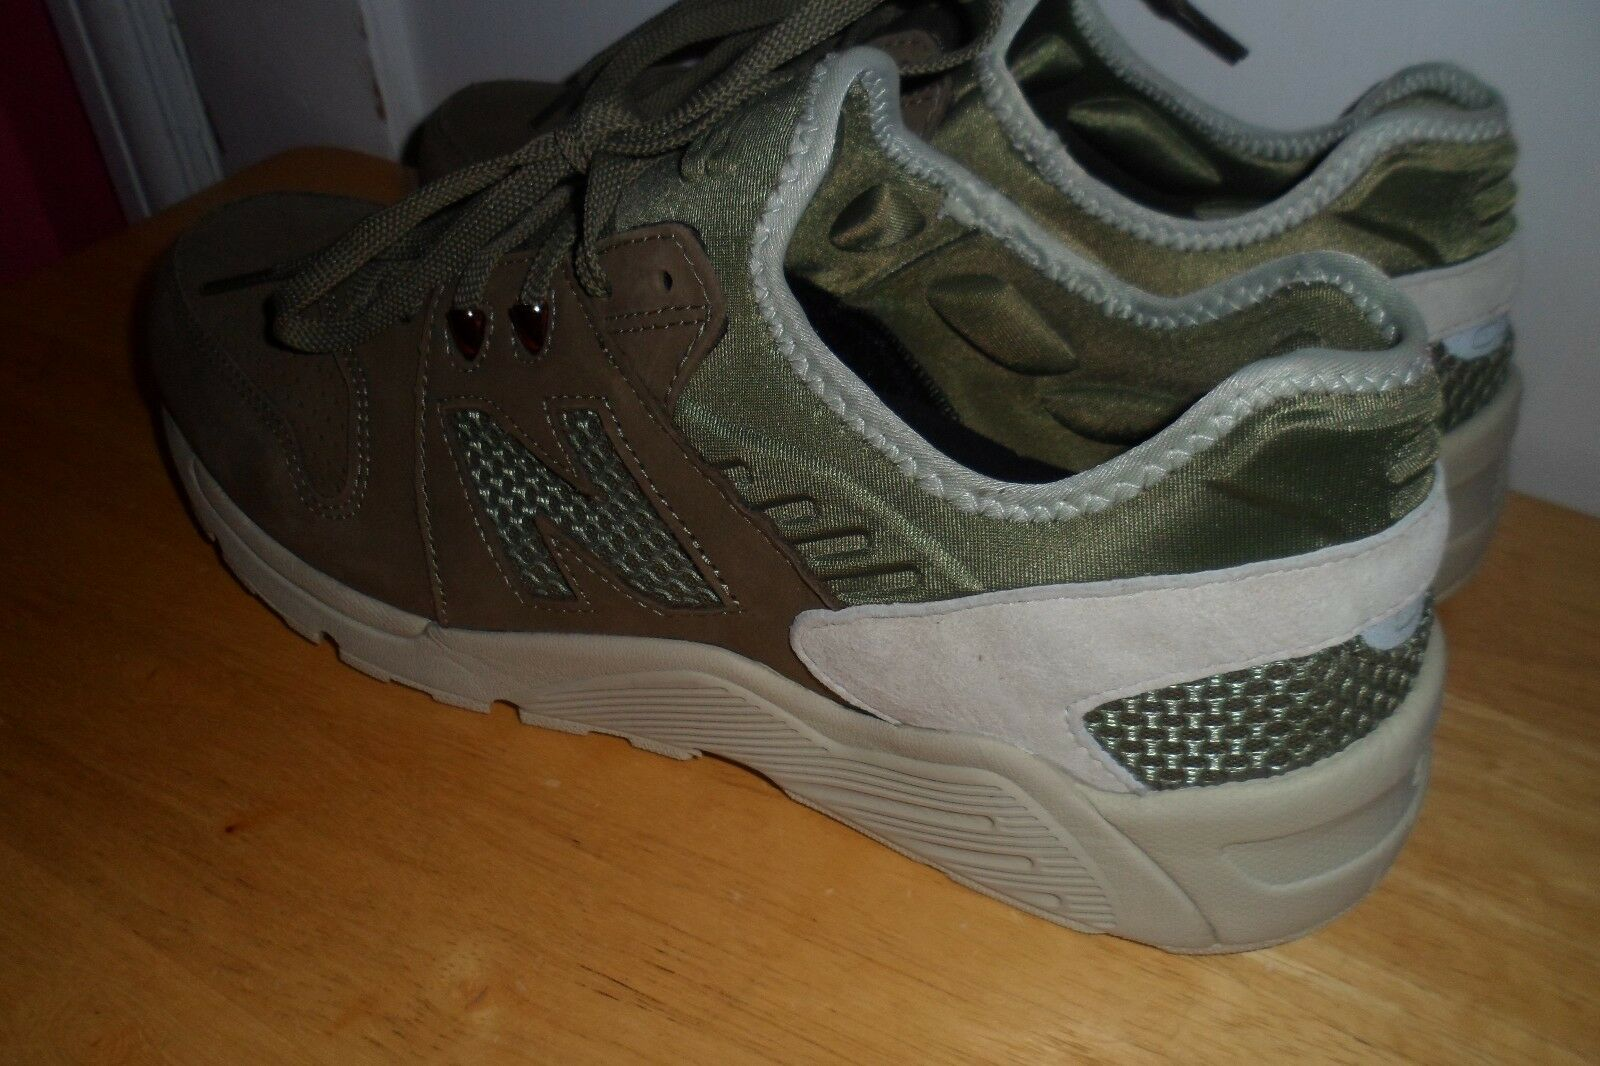 MUST SEE FABULOUS 99.99 2018 New Balance 009 ML009SCA MEN 12 D WORN 1 TIME